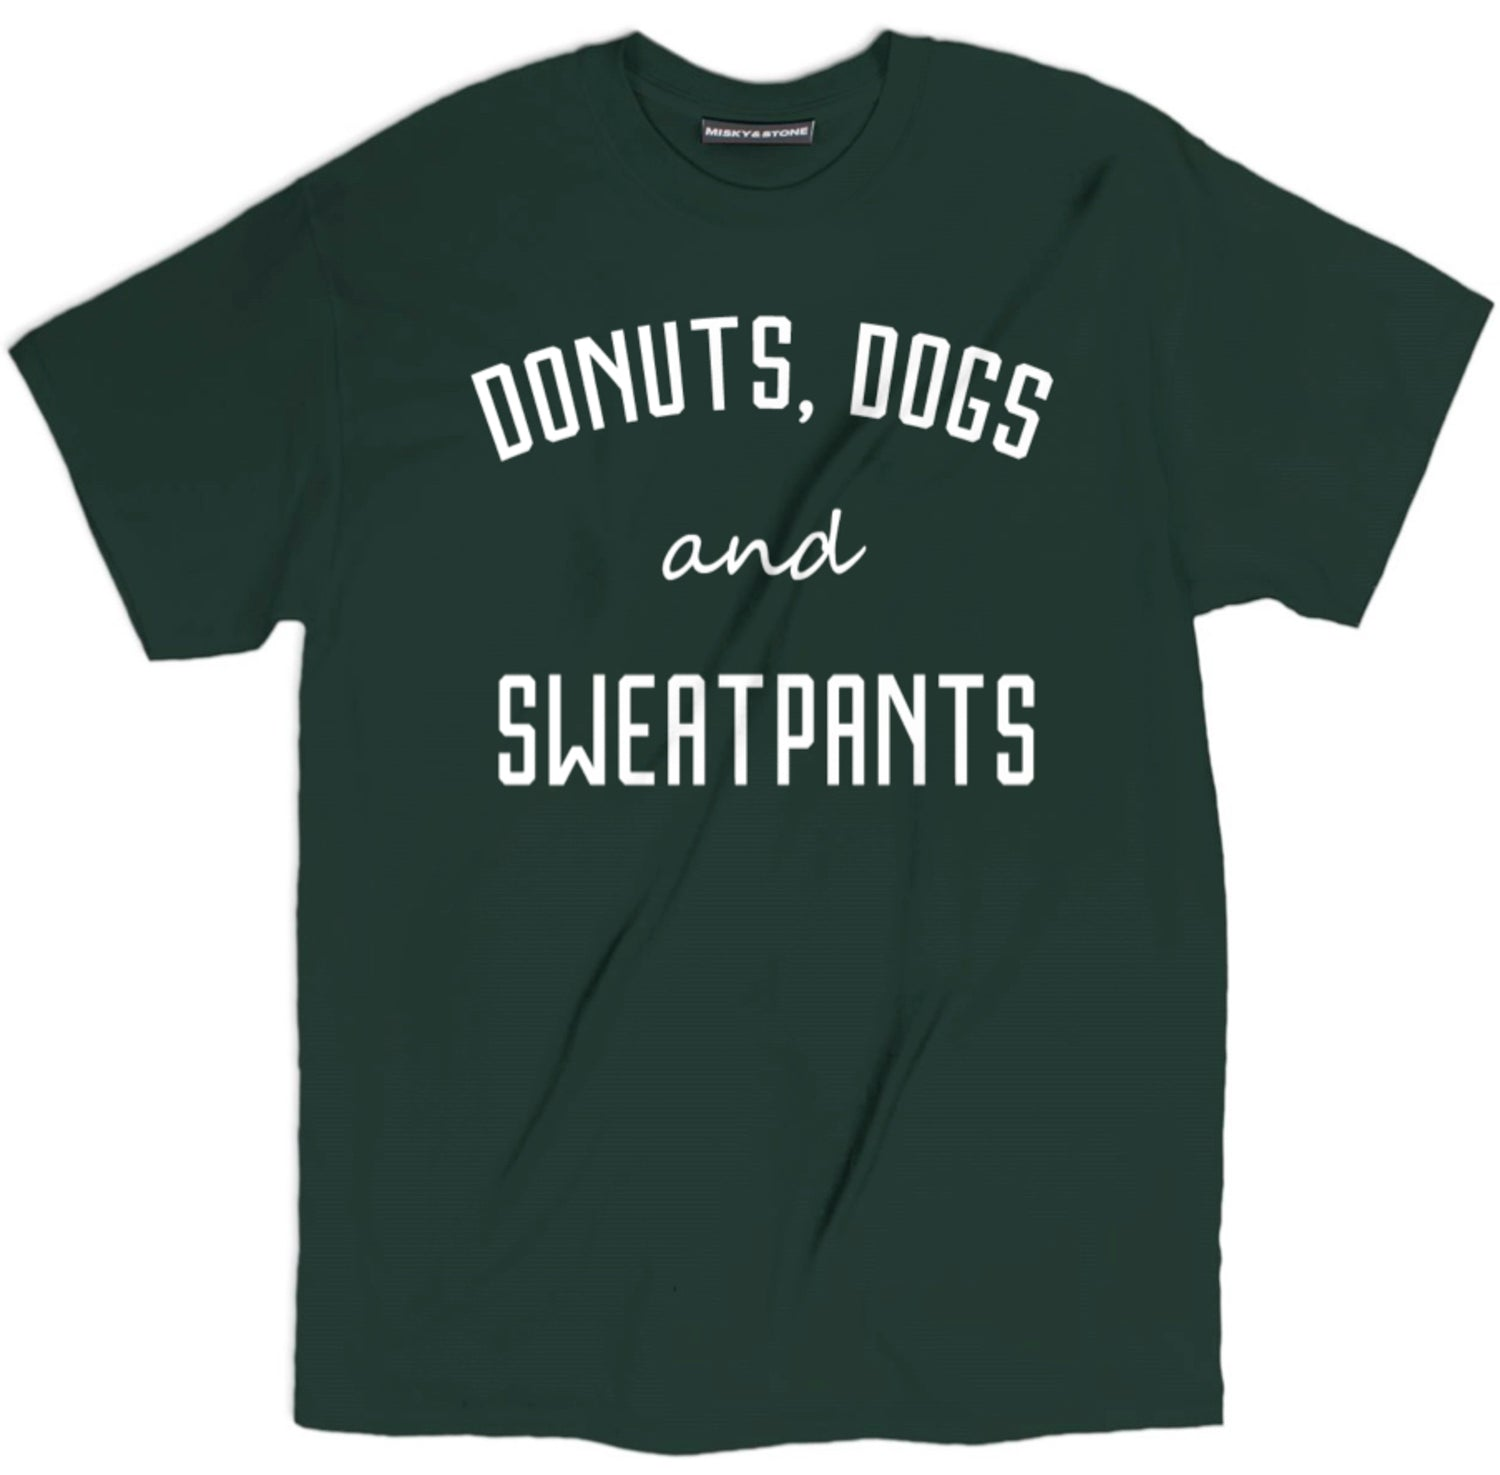 Donuts Dog And Sweatpants Shirt